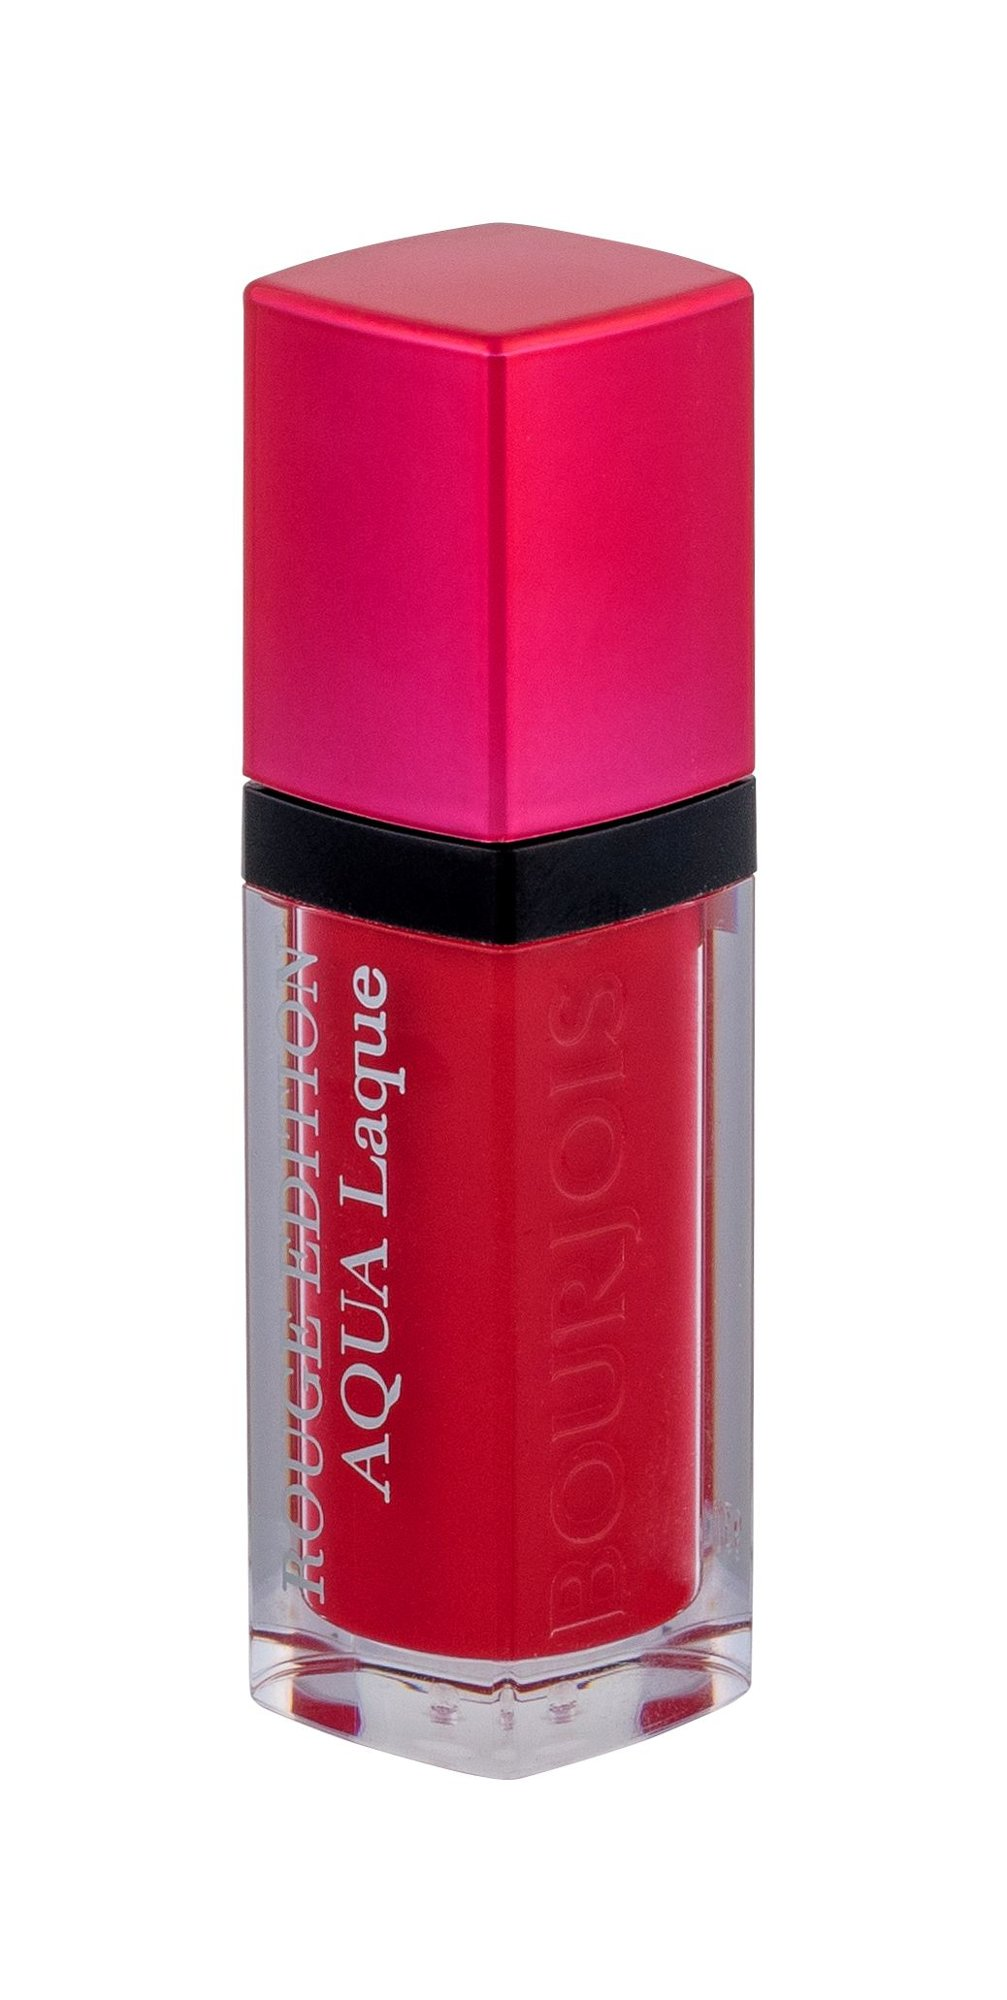 BOURJOIS Paris Rouge Edition Cosmetic 7,7ml 07 Fuchsia Perché